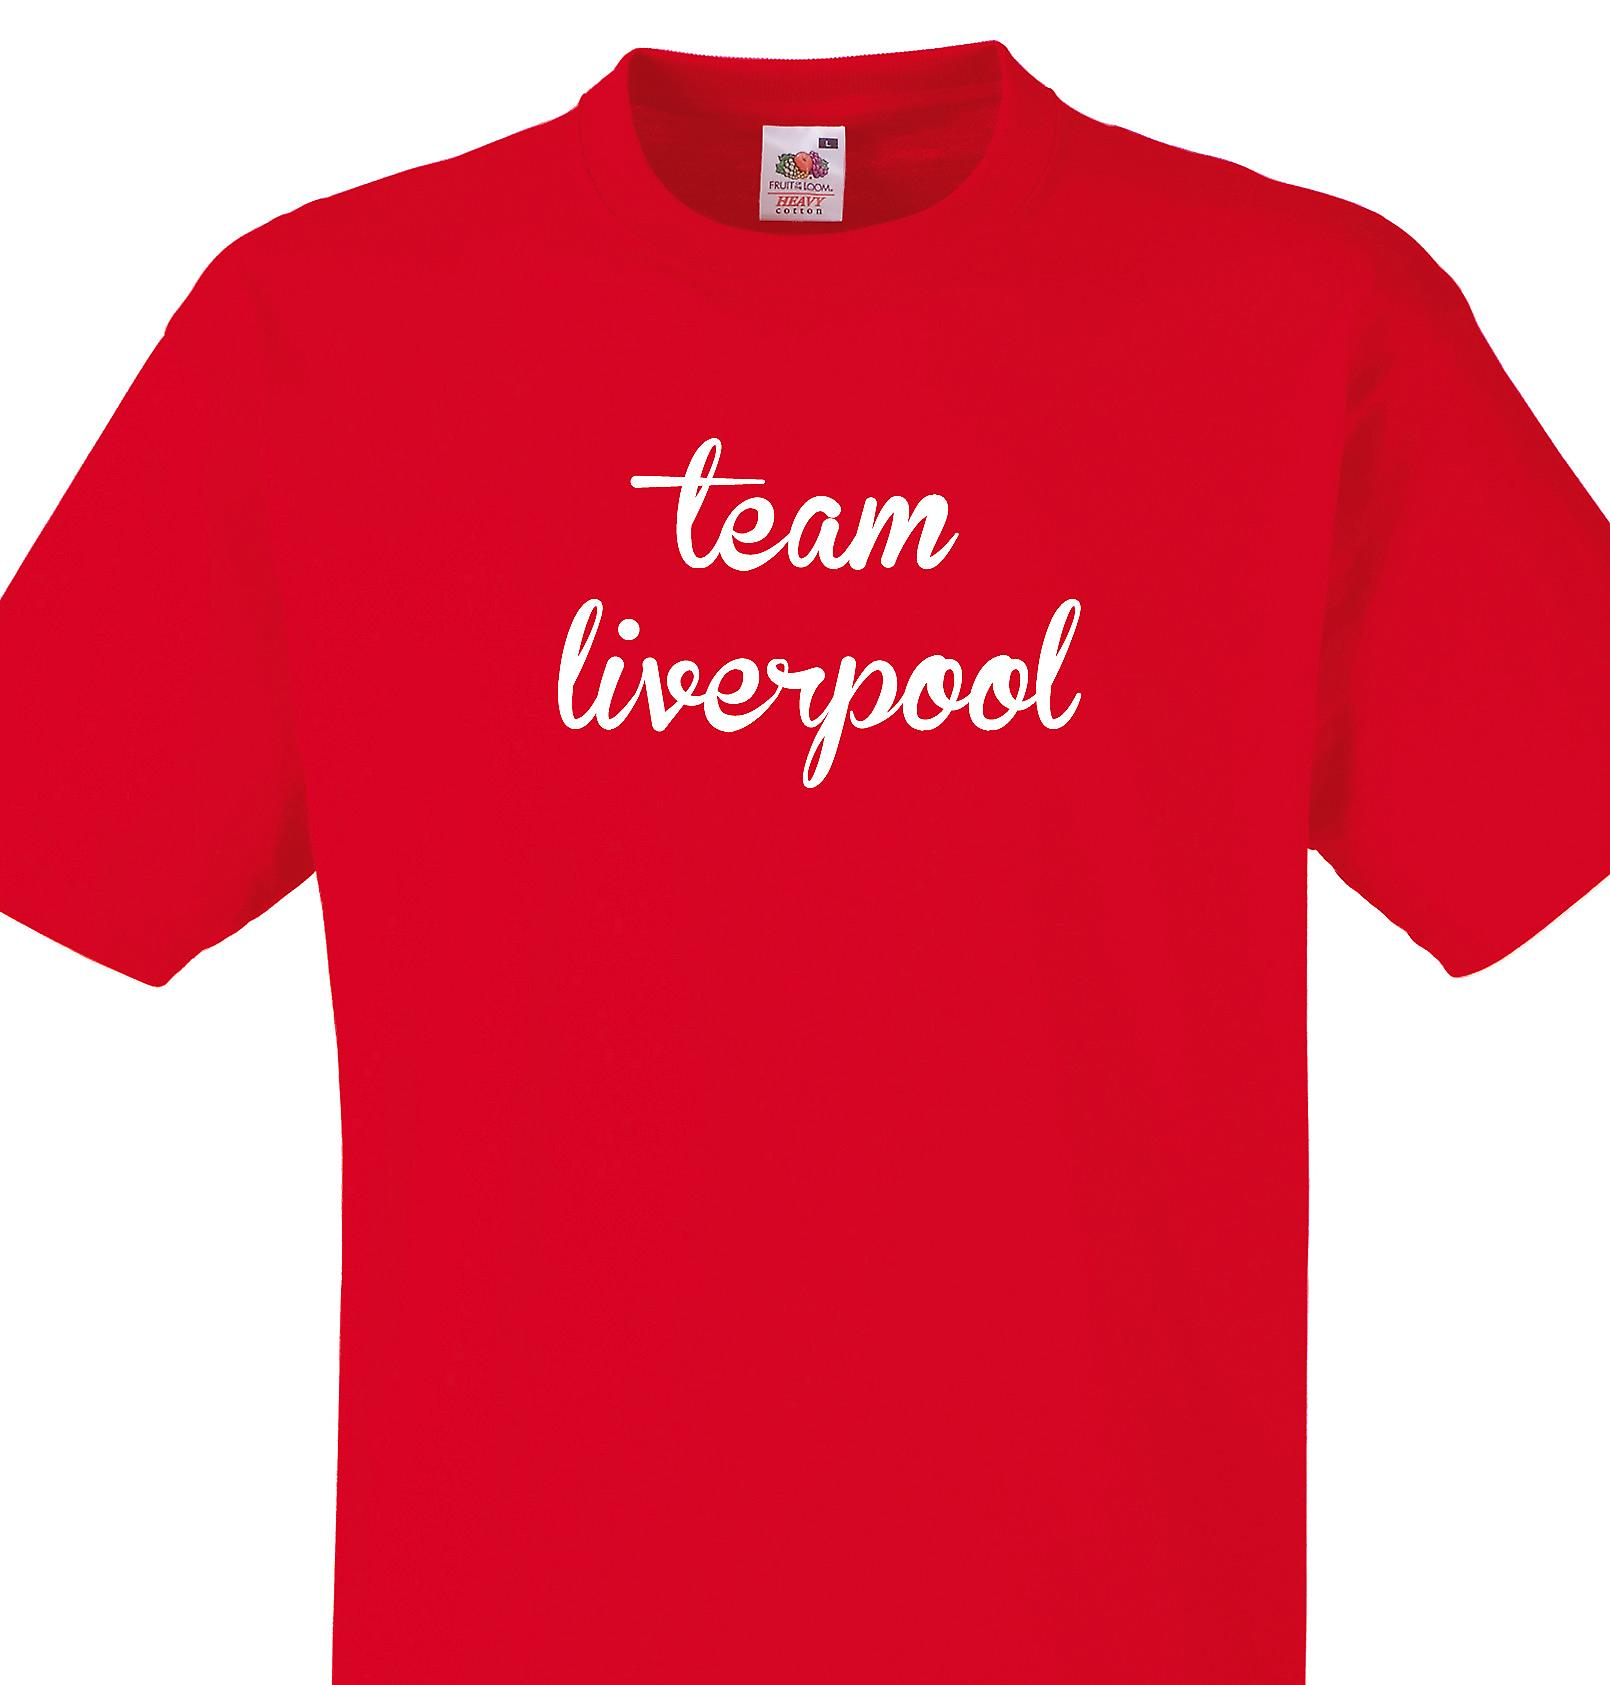 Team Liverpool Red T shirt